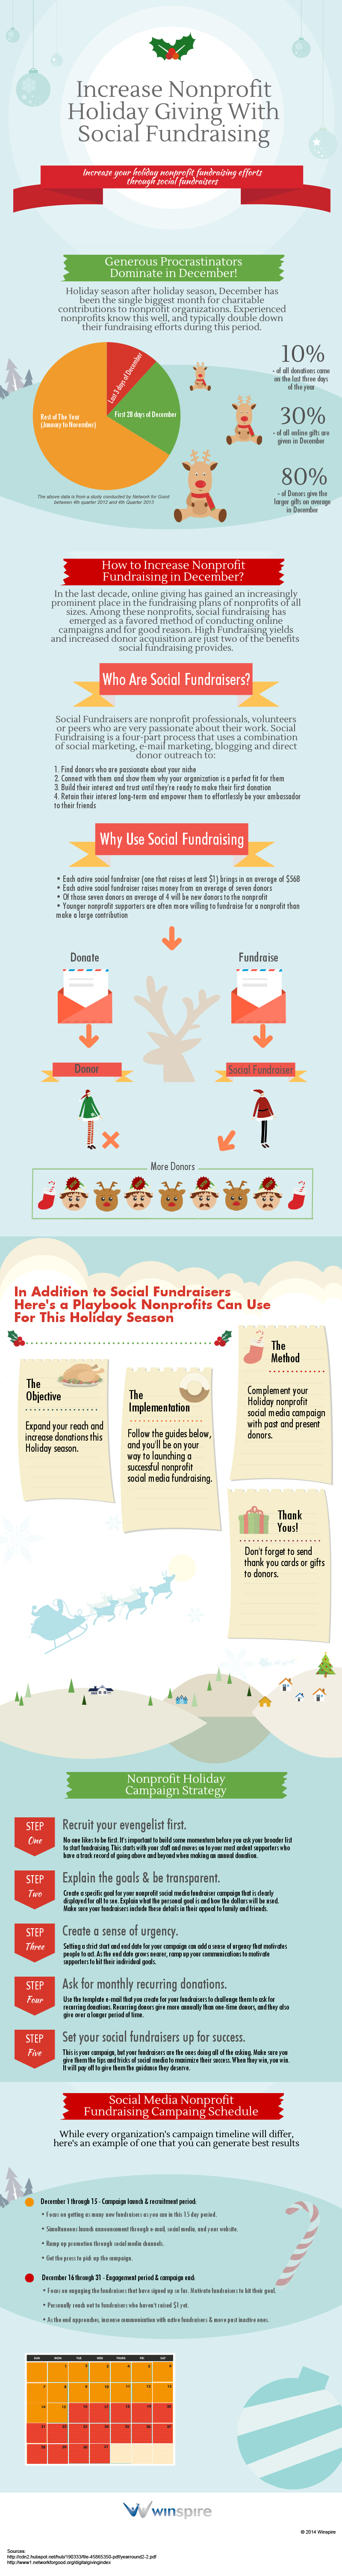 Increase Nonprofit Holiday Giving with Social Fundraising [INFOGRAPHIC]